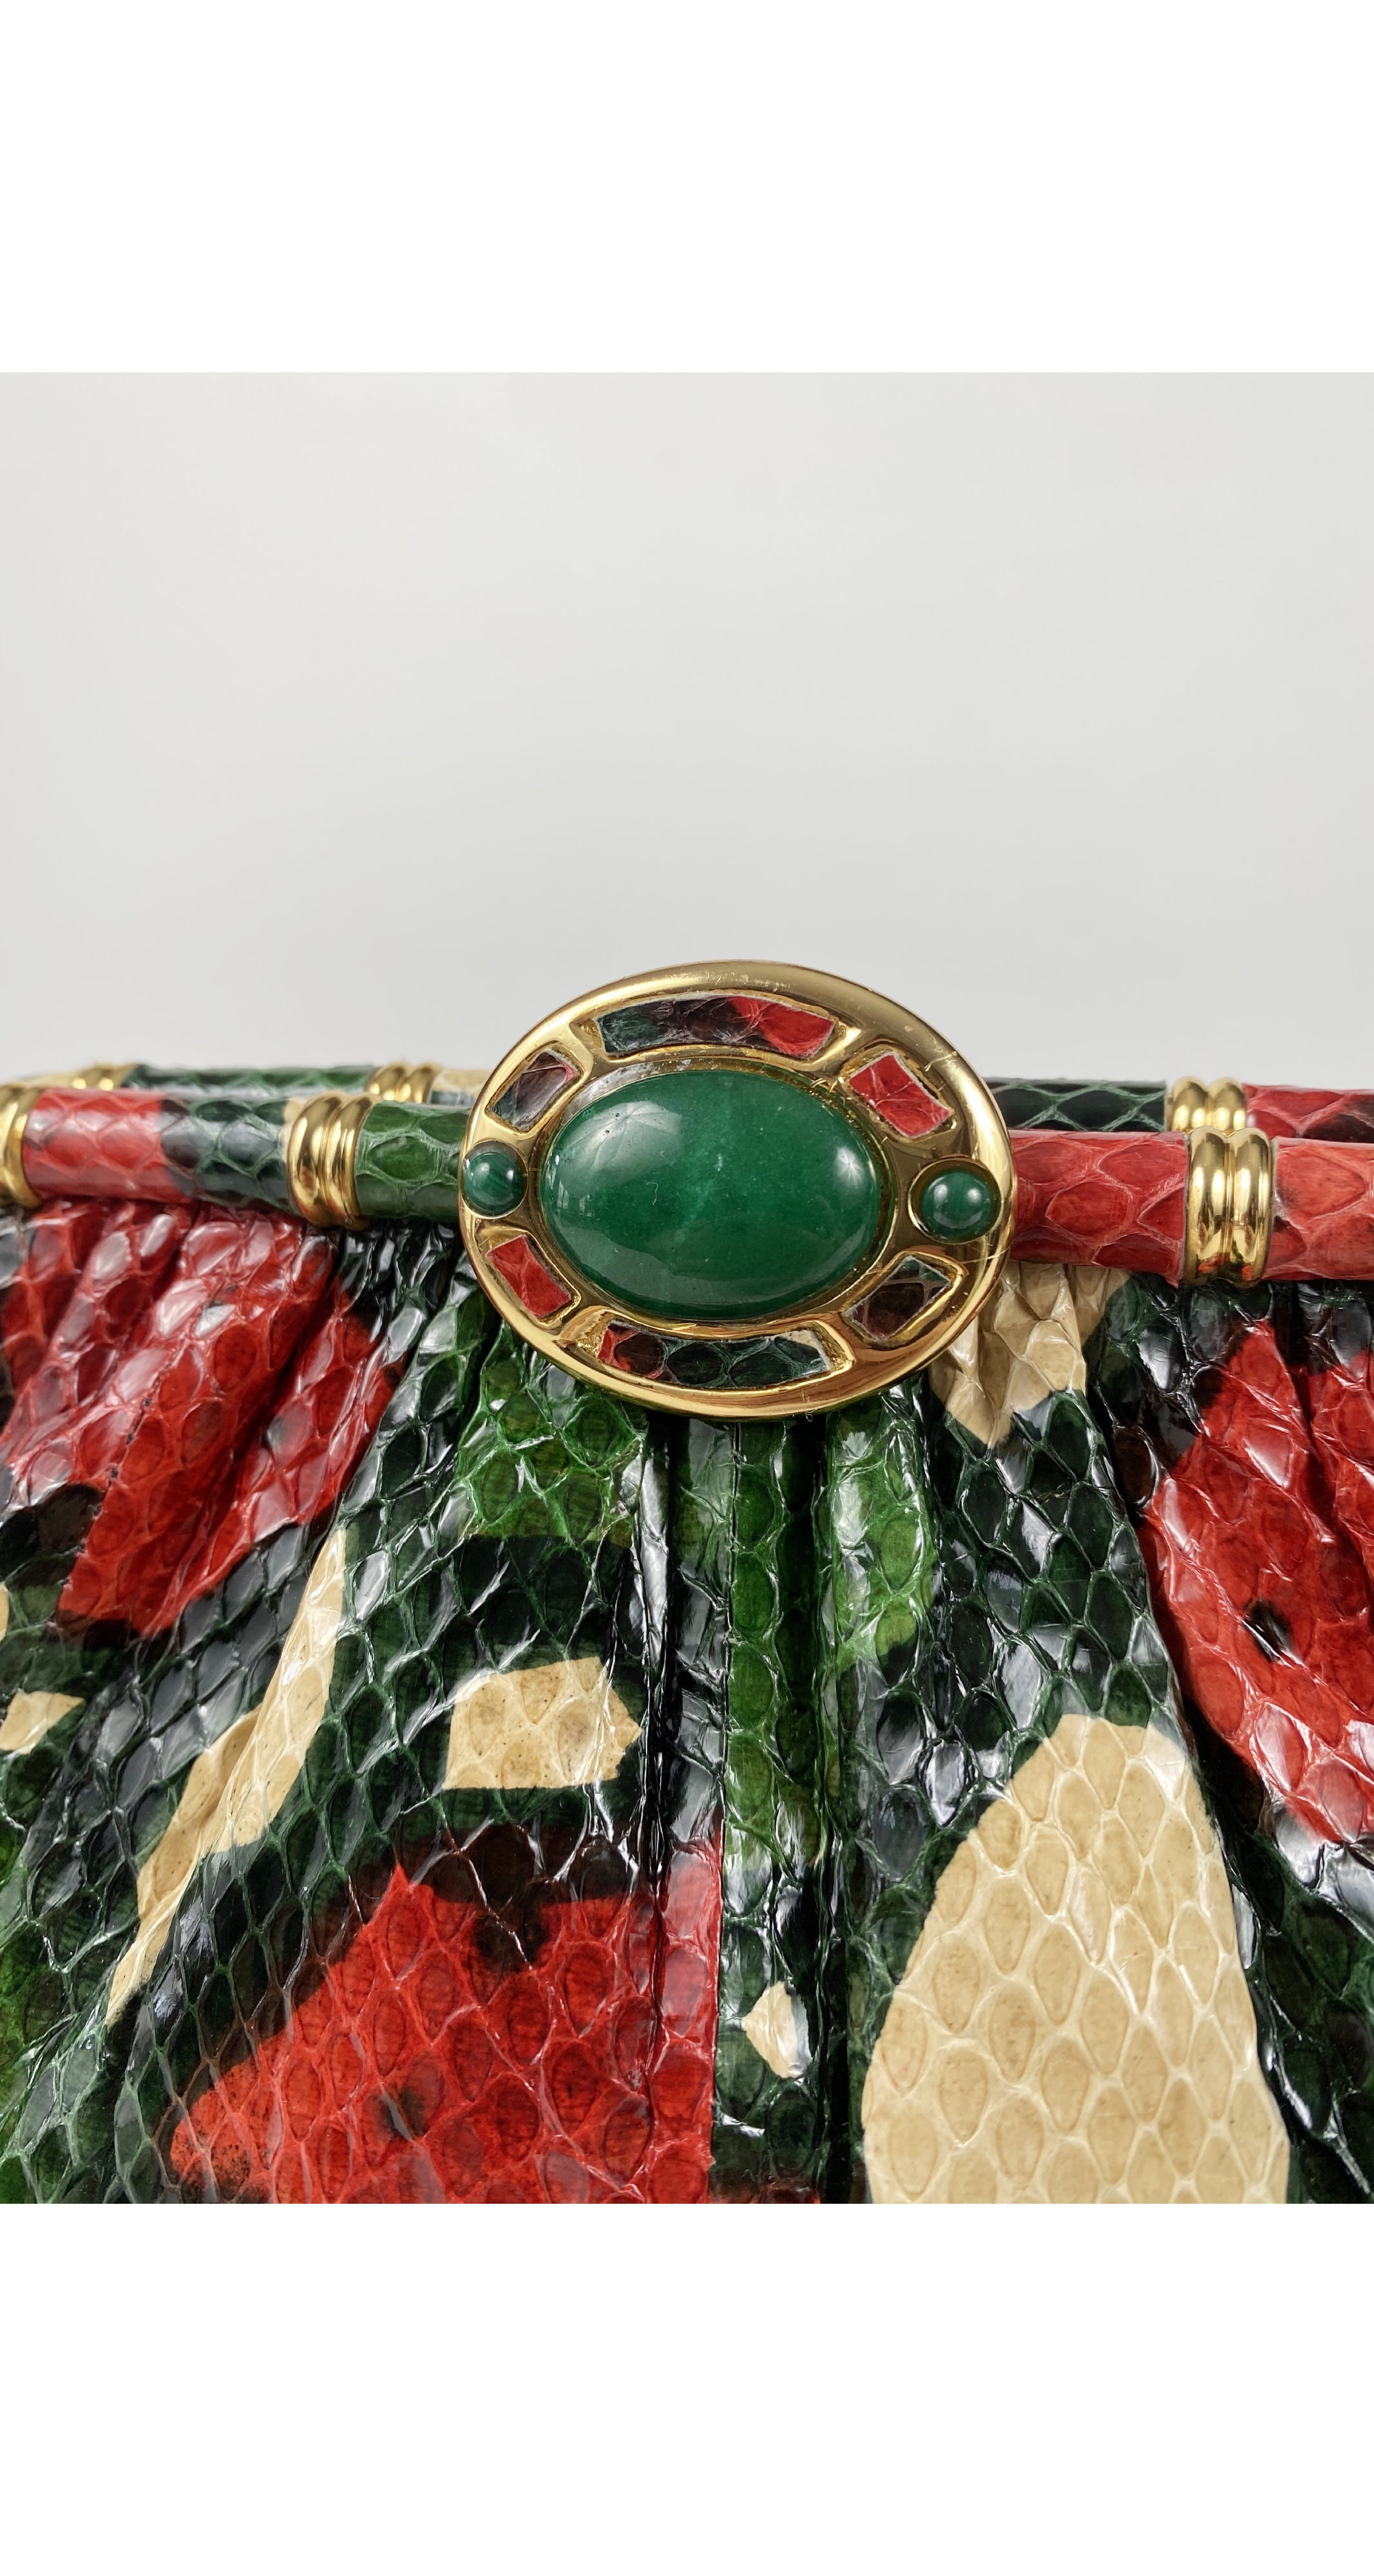 1980s Green & Red Snakeskin Convertible Clutch